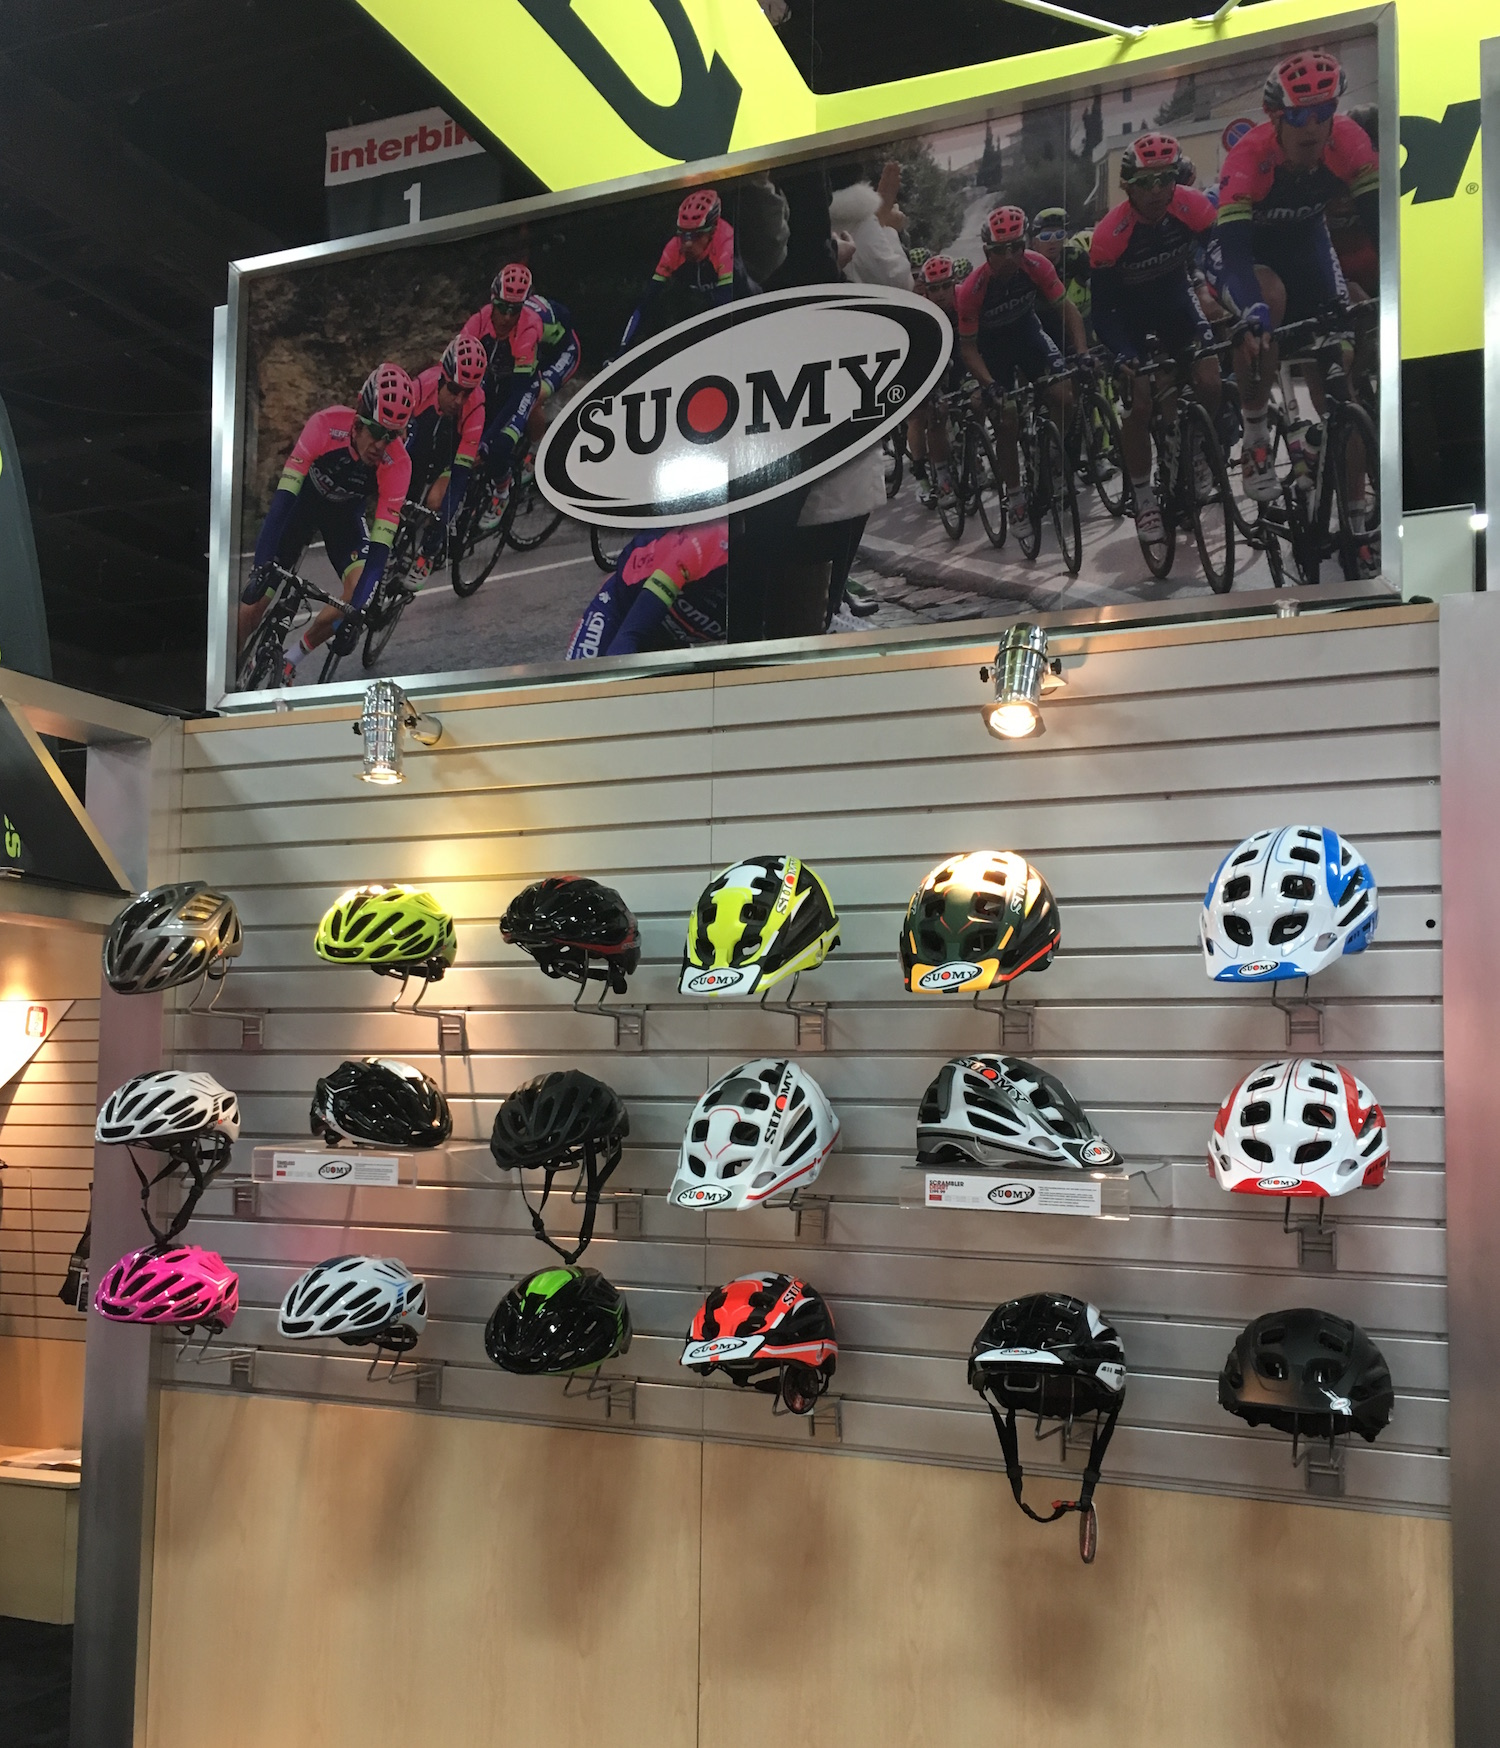 suomy at Interbike 2016